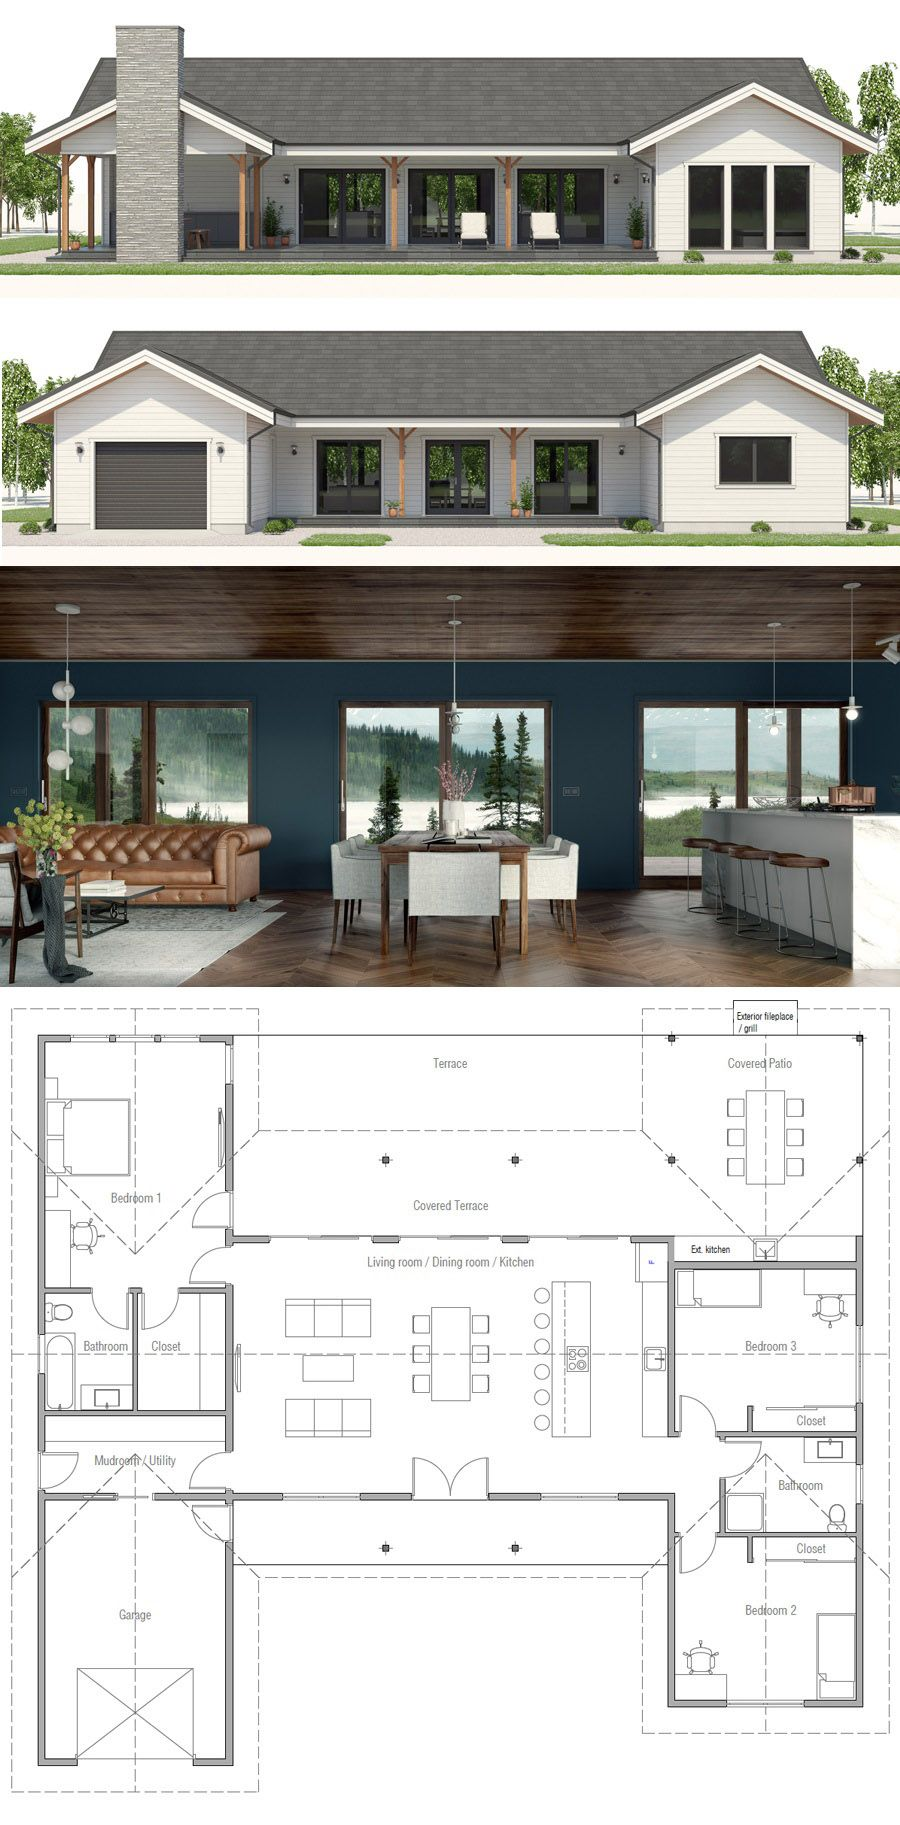 House Designs Housedesign Interiordesign Newhomes New House Plans Single Story House Floor Plans Small House Floor Plans